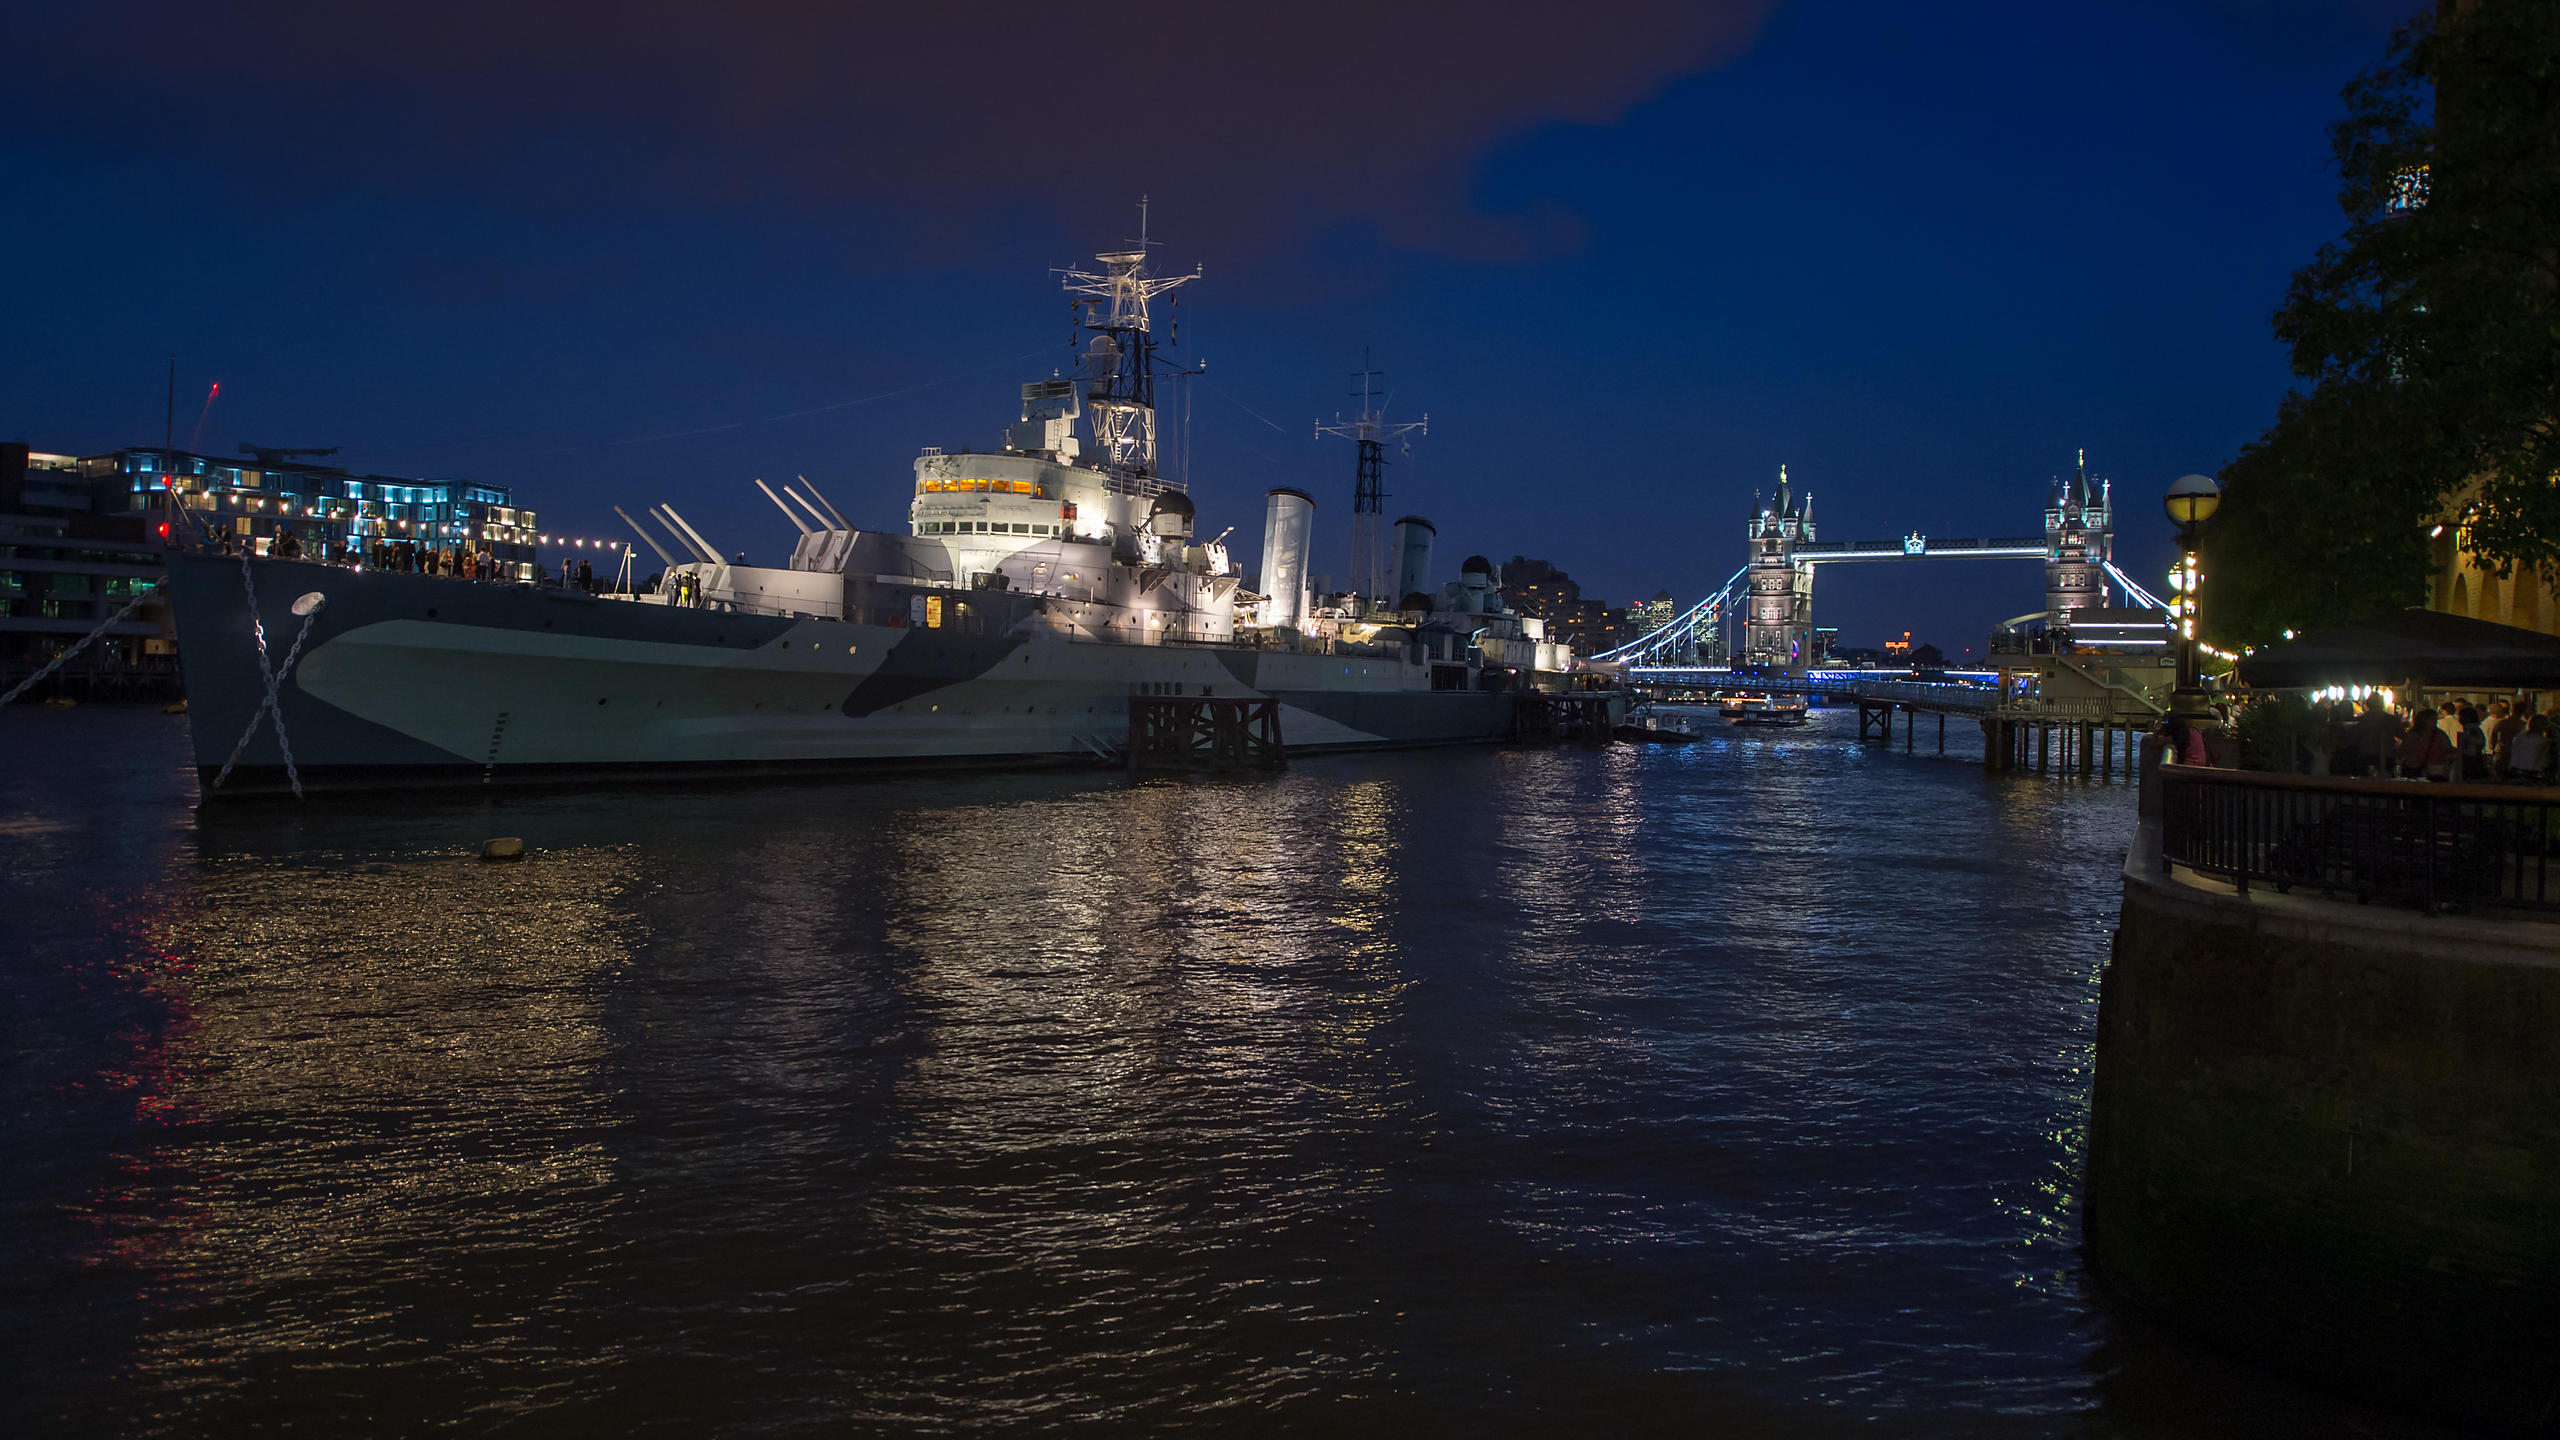 HMS Belfast at Night with Tower Bridge and Thames River